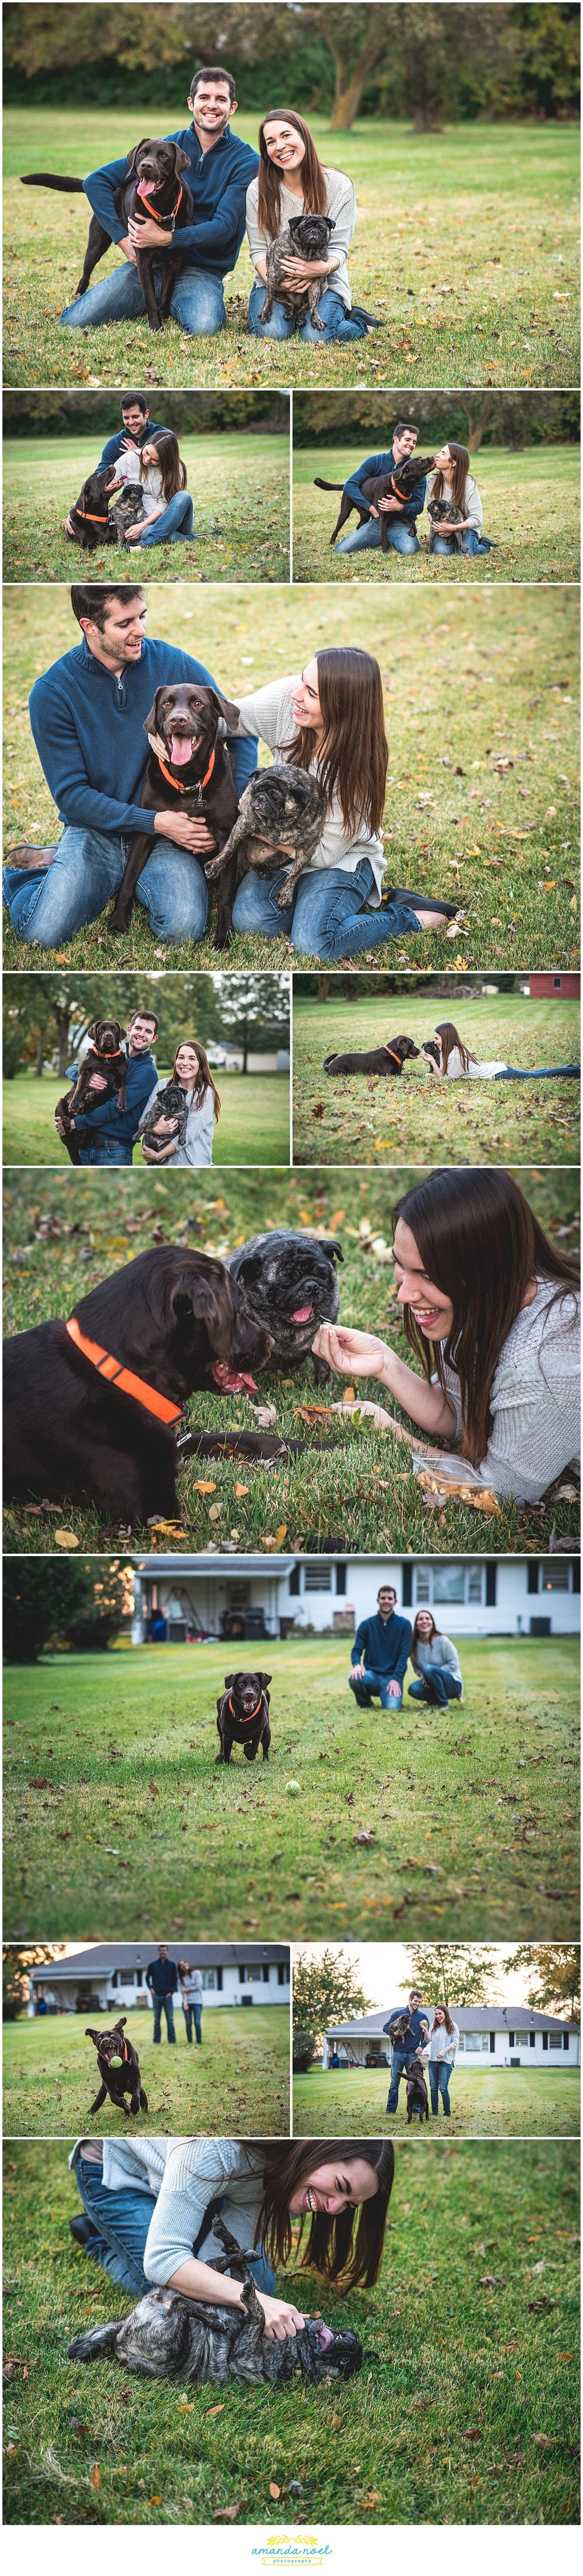 Columbus-Ohio-candid-couple-portraits-at-home-with-dogs